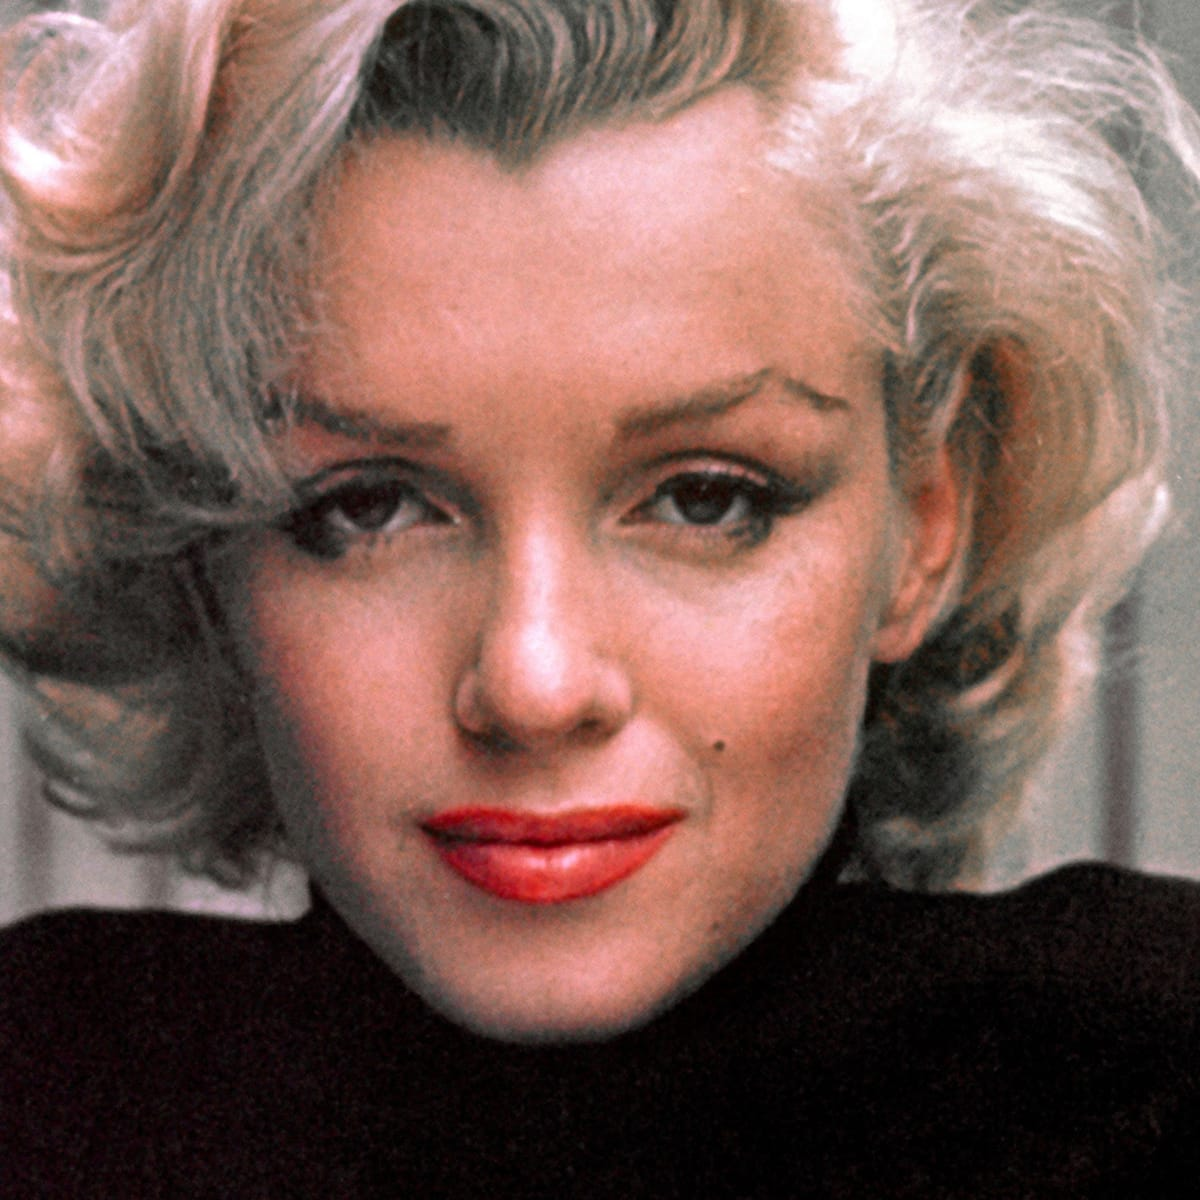 Actress Porn Retiren For 24 Years marilyn monroe: inside her final days and fragile state of